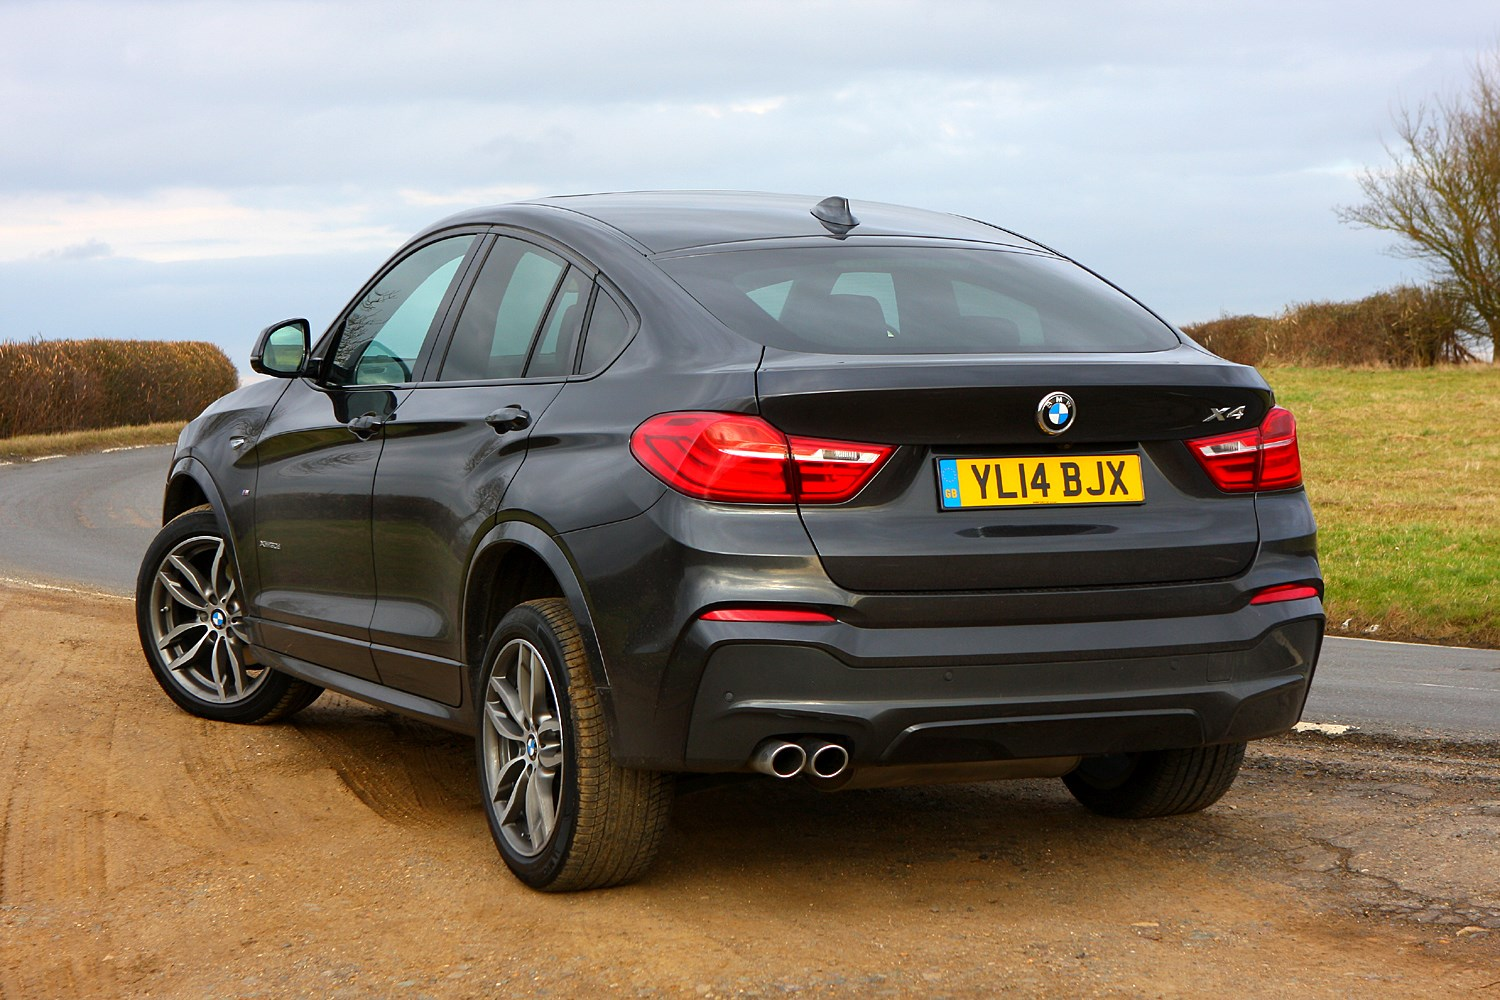 Bmw Xline Bmw X1 Xdrive25d Xline Review The New Bmw X1